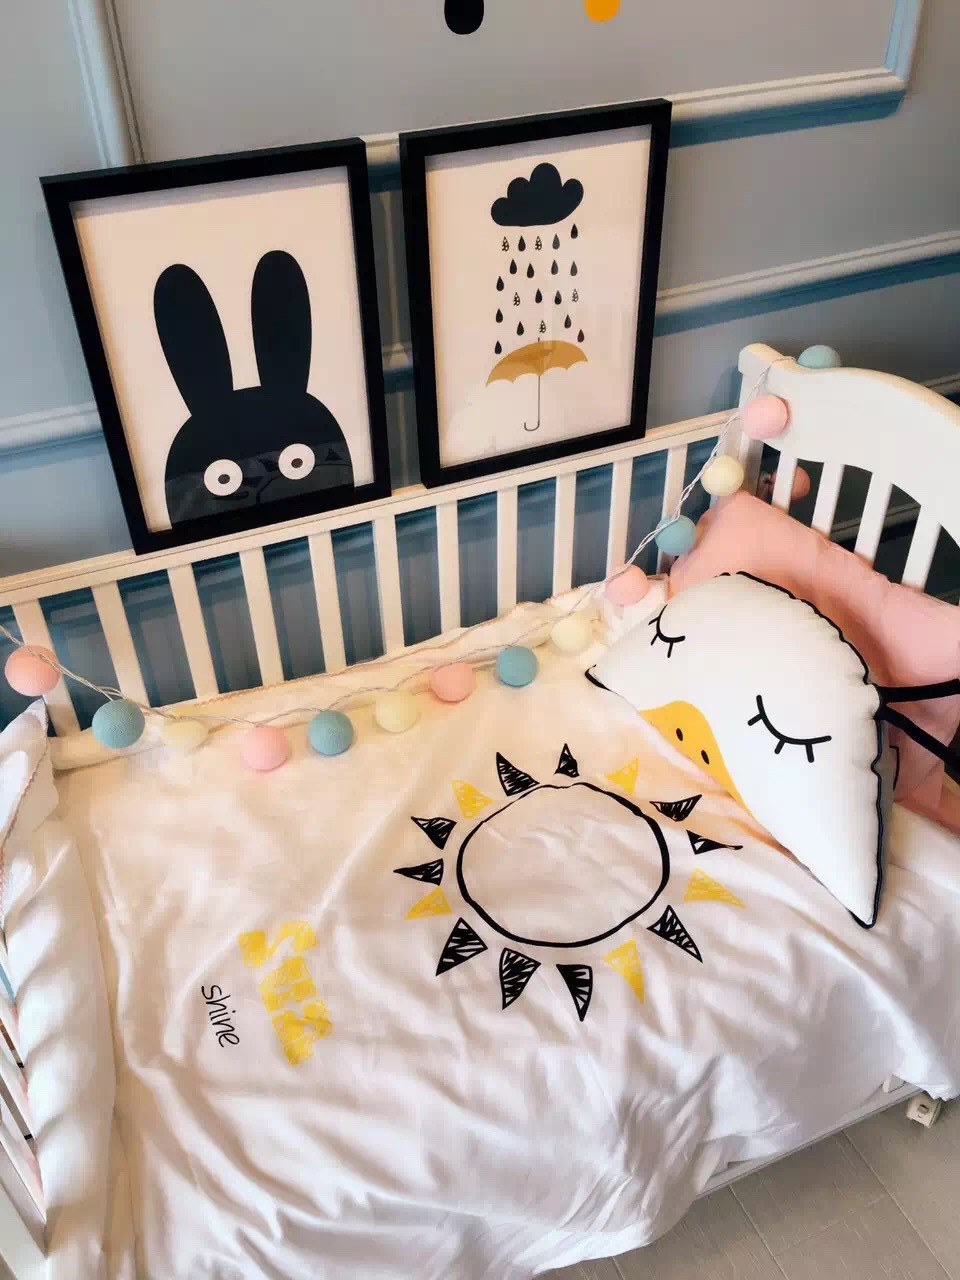 High quality blanket 100% Mulberry Natural Silk quilt baby lovely delicate sun raindrop children bedding for kids baby girl boy high quality 100% natural pure sweet honey bee honey